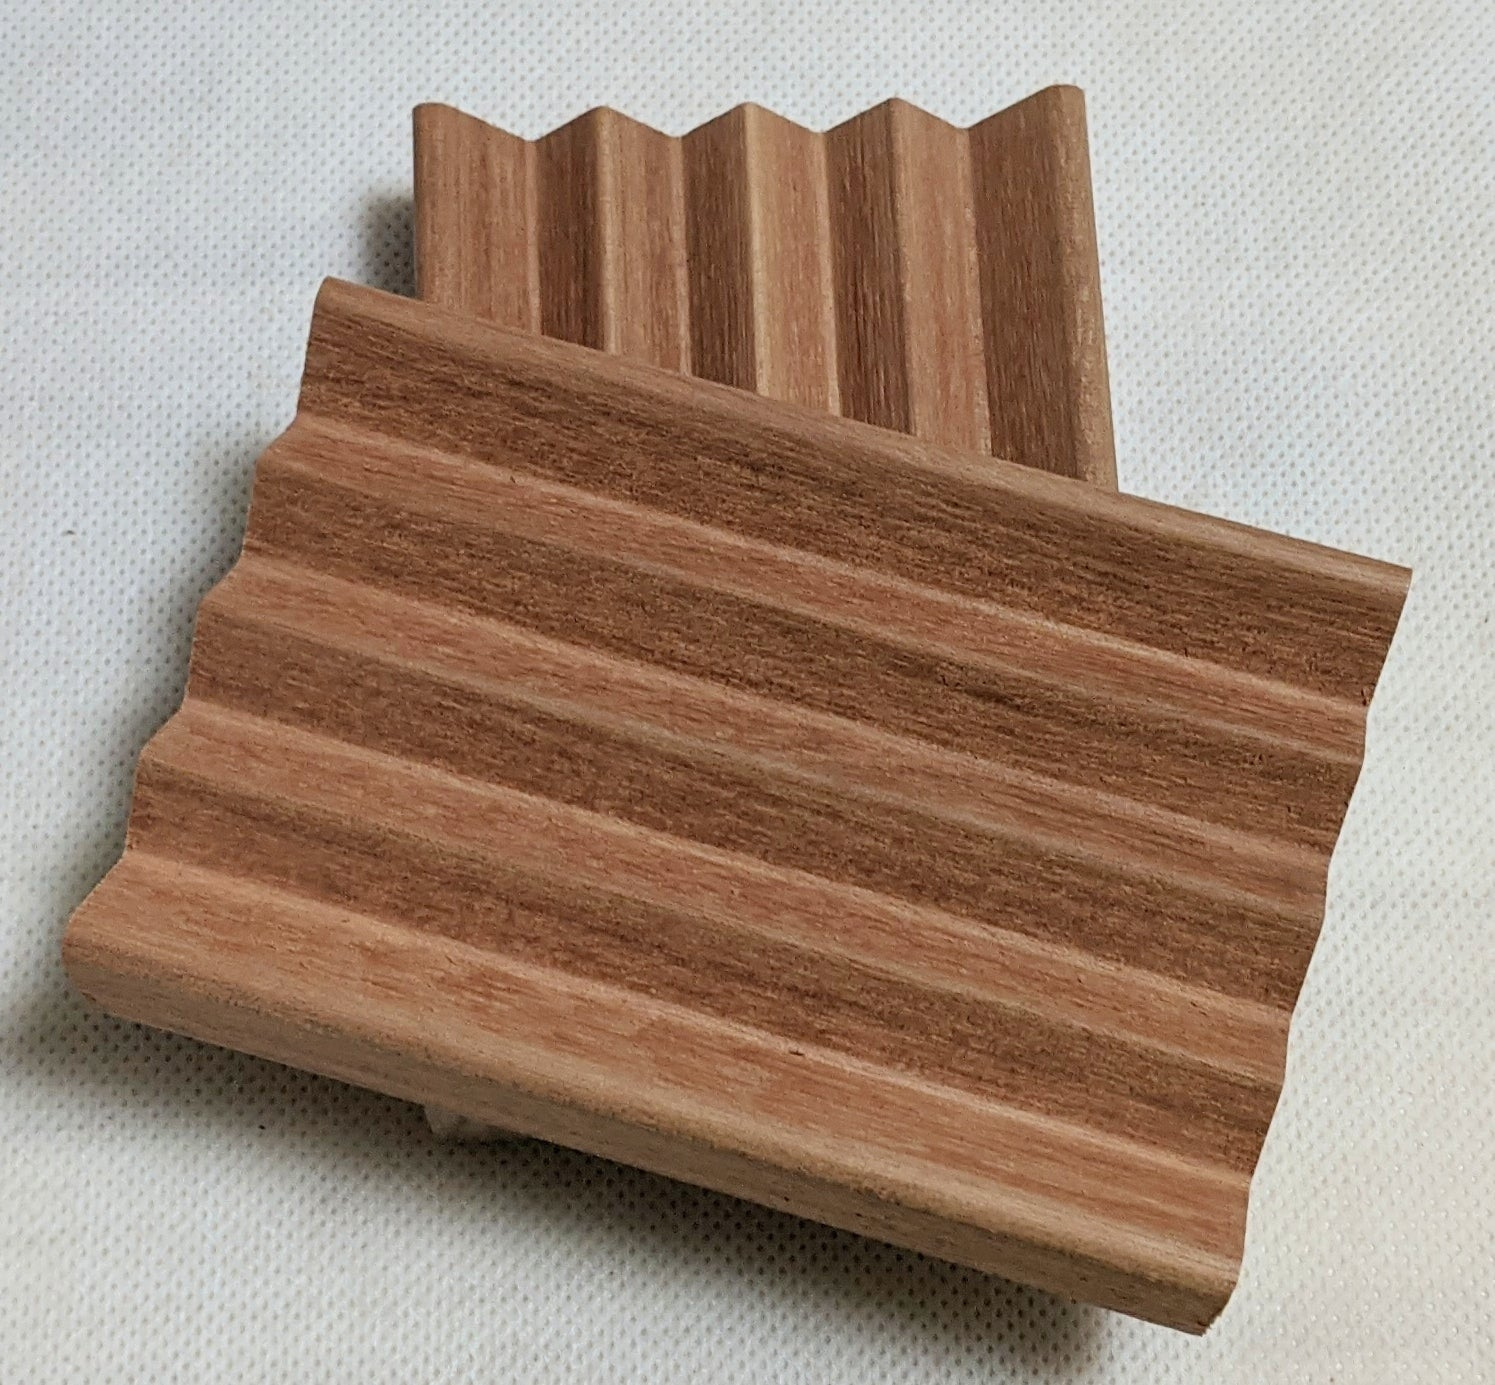 Handcrafted Exotic Wood Soap Dish